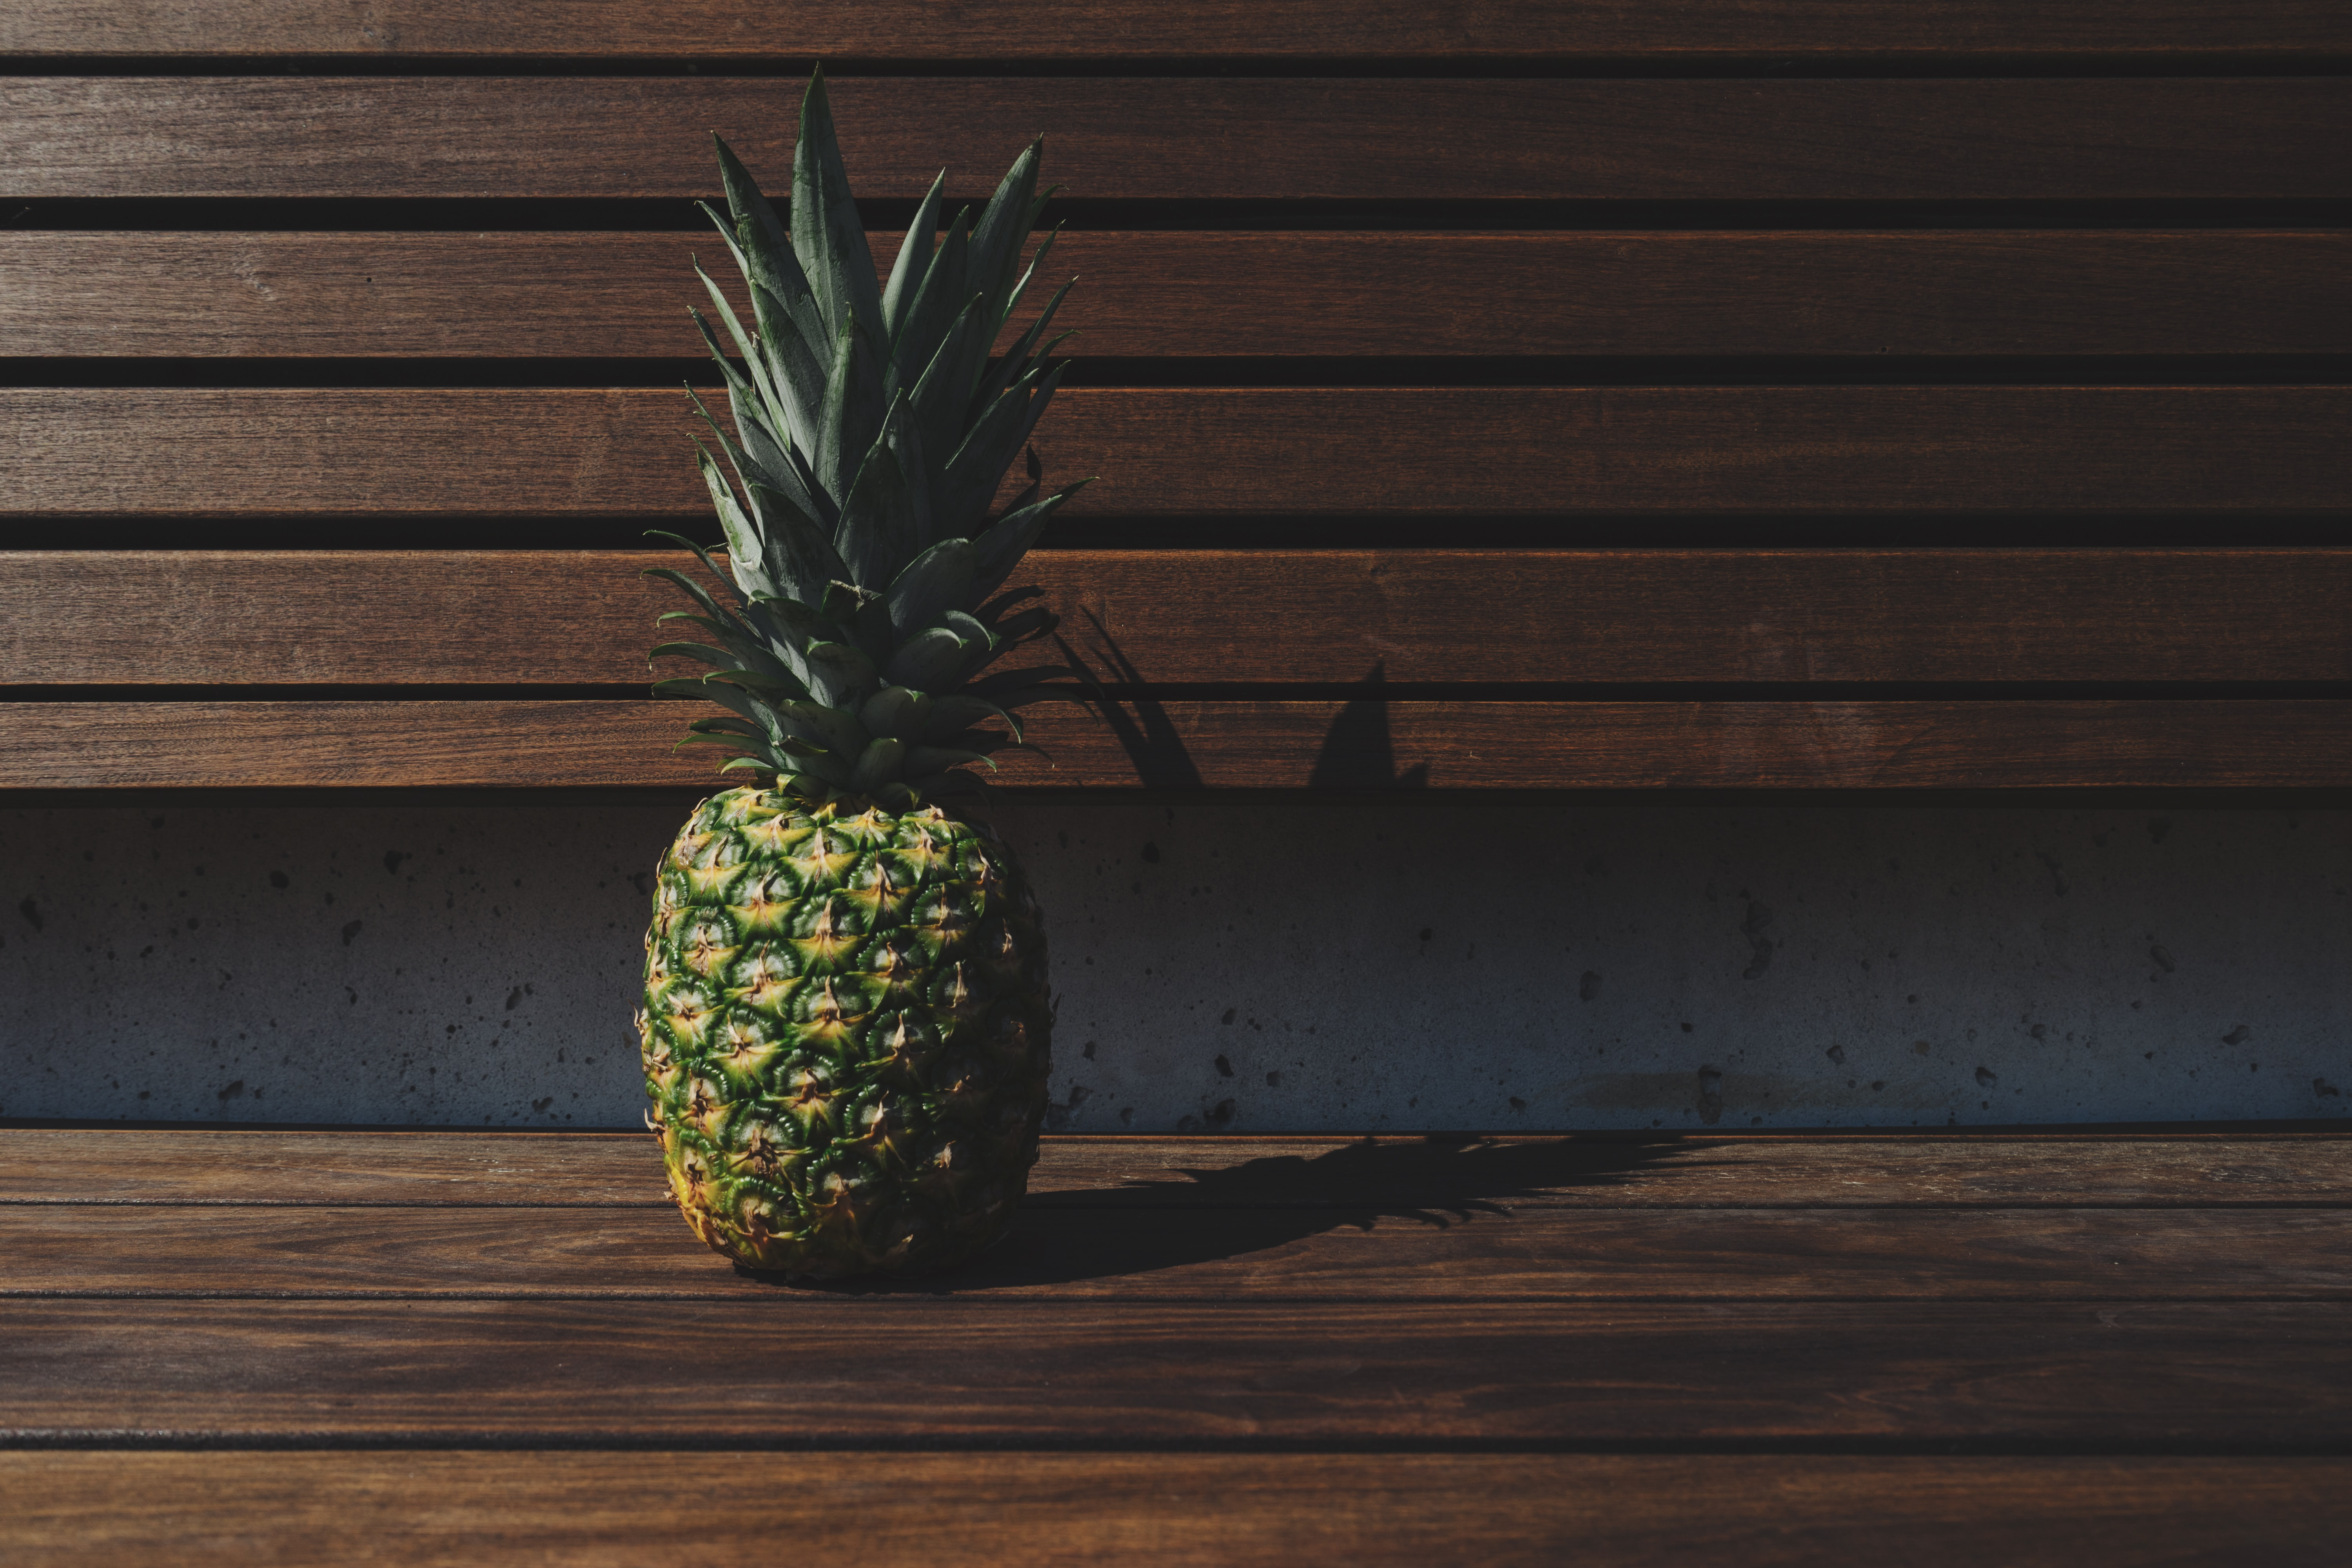 Pineapple on a wooden bench.